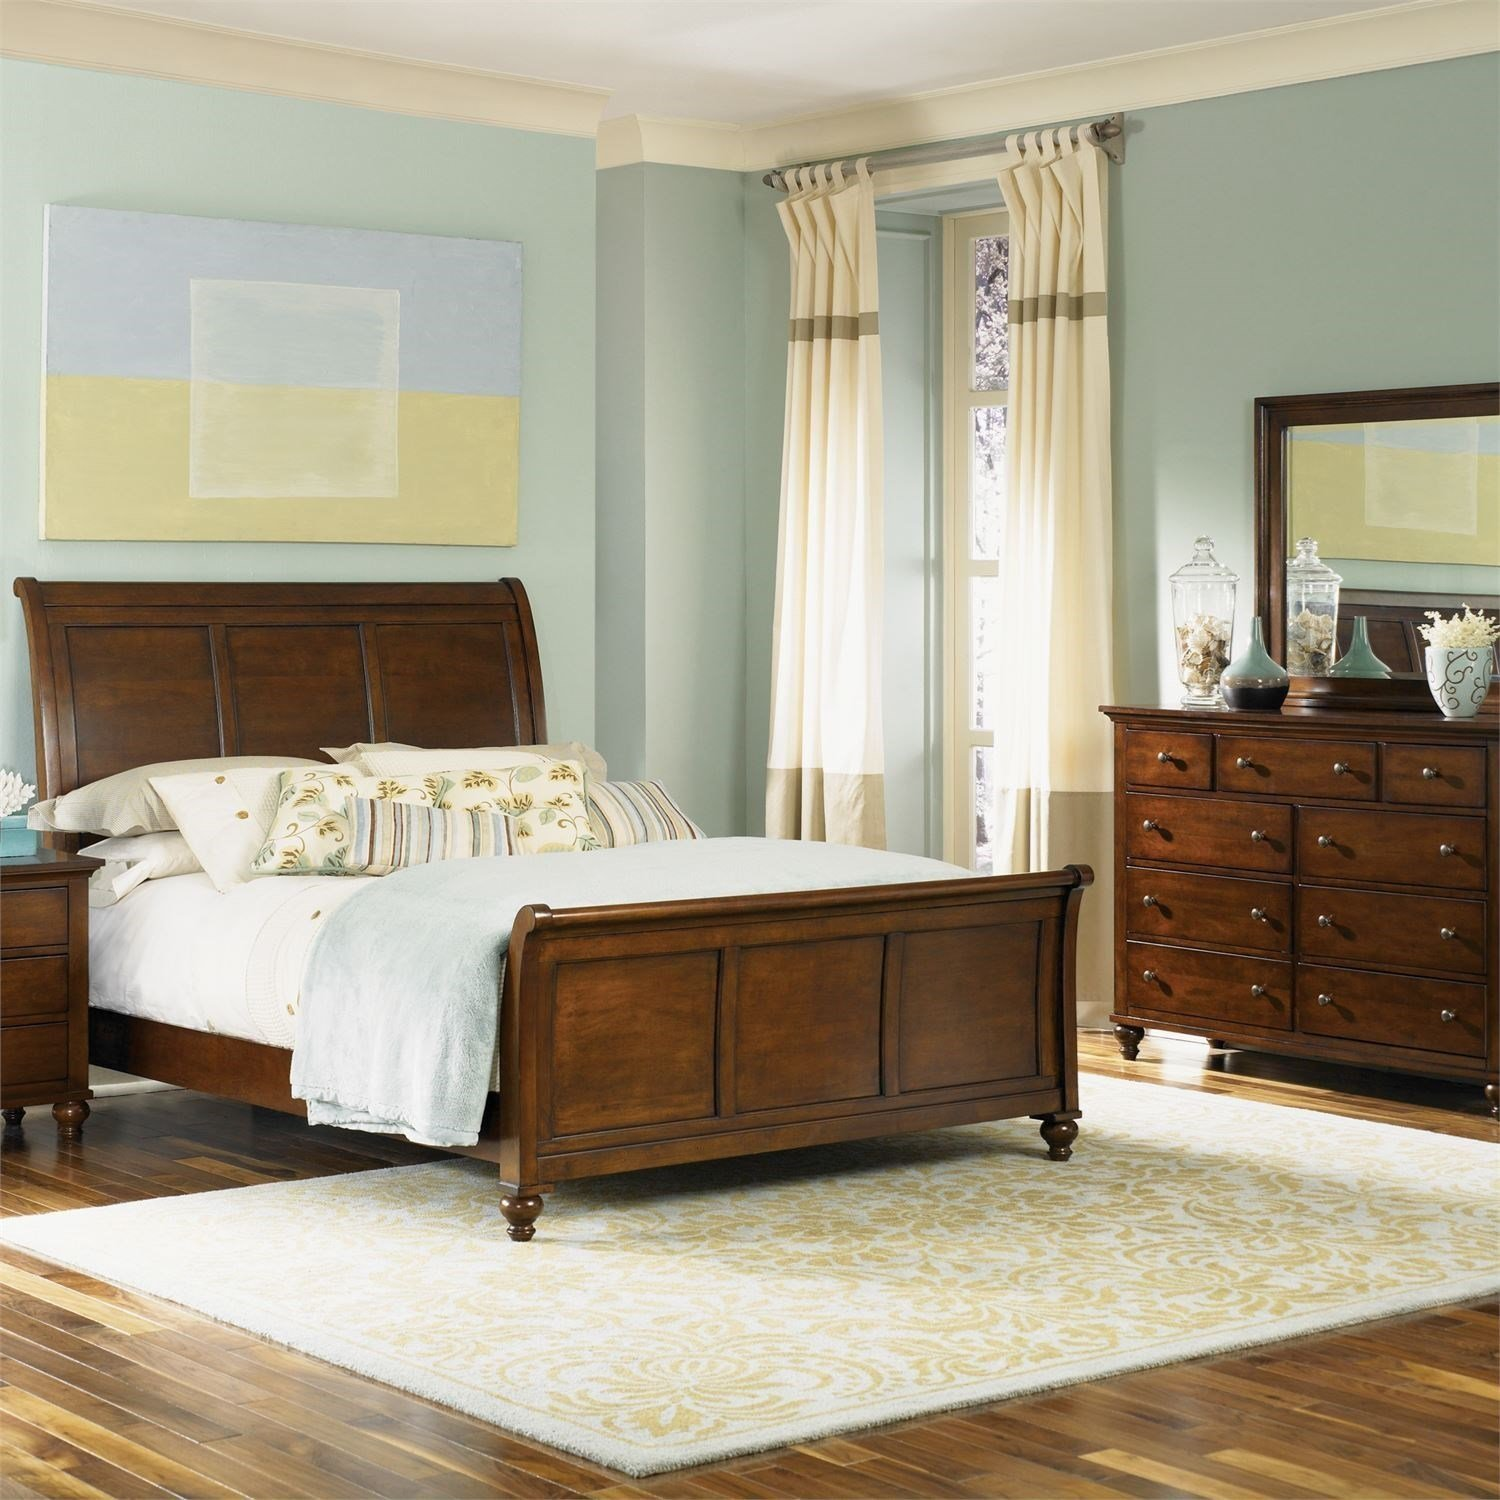 Best Liberty Furniture Hamilton Queen Bedroom Group Royal With Pictures